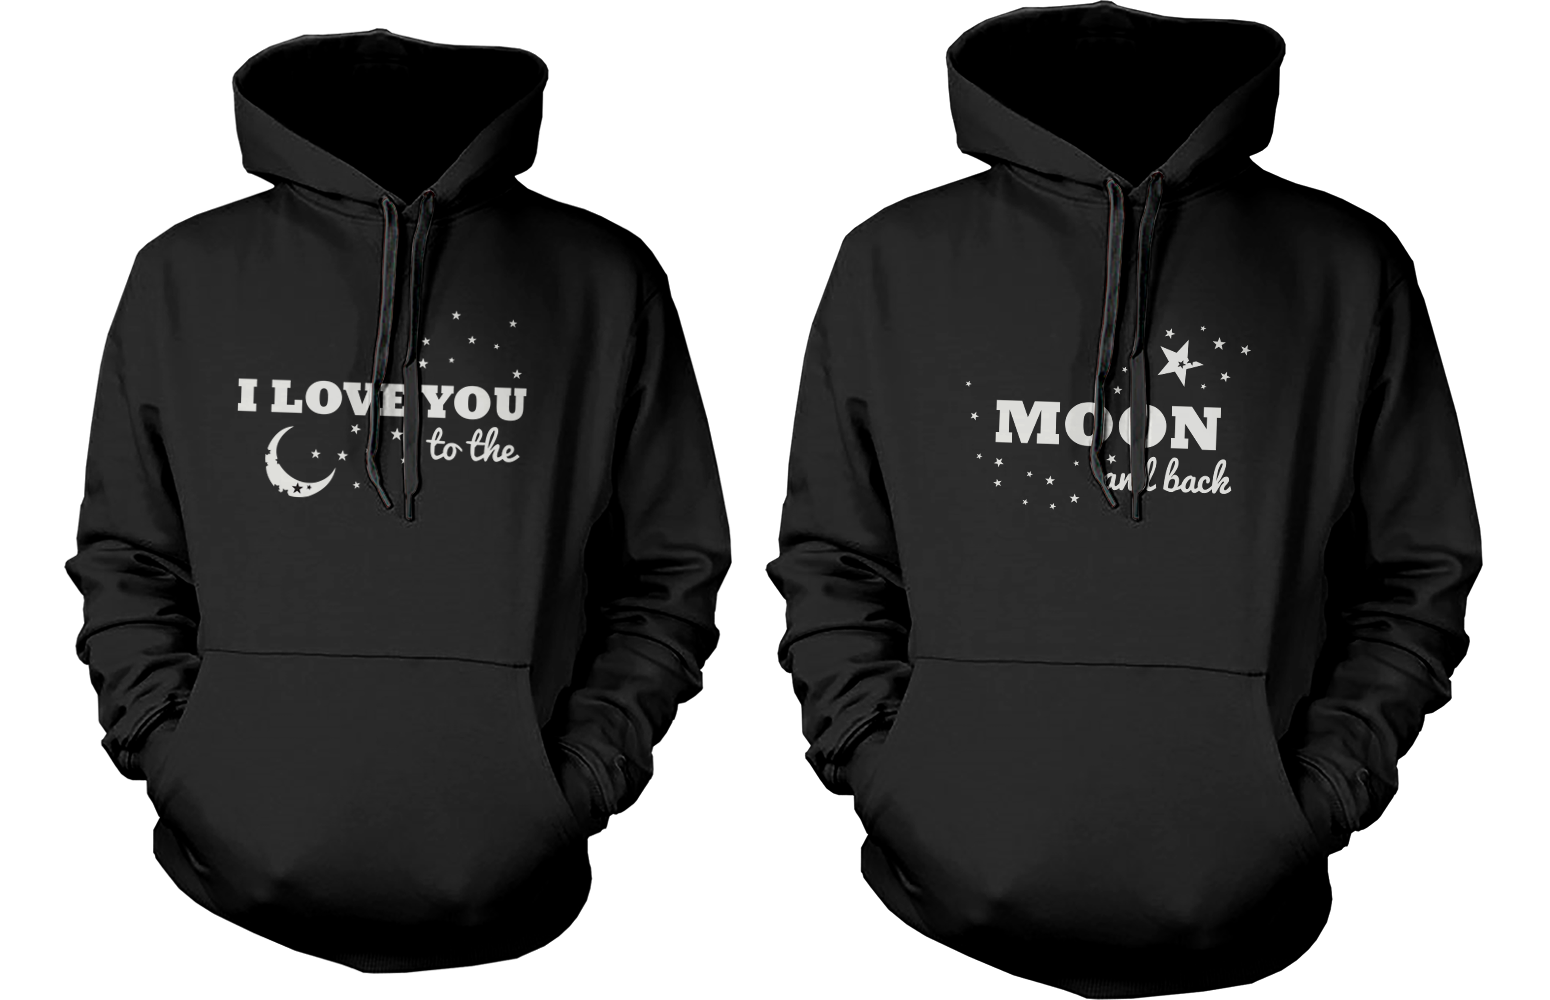 06d9fac64 couple hoodie - I love you to the moond and back 365inlove